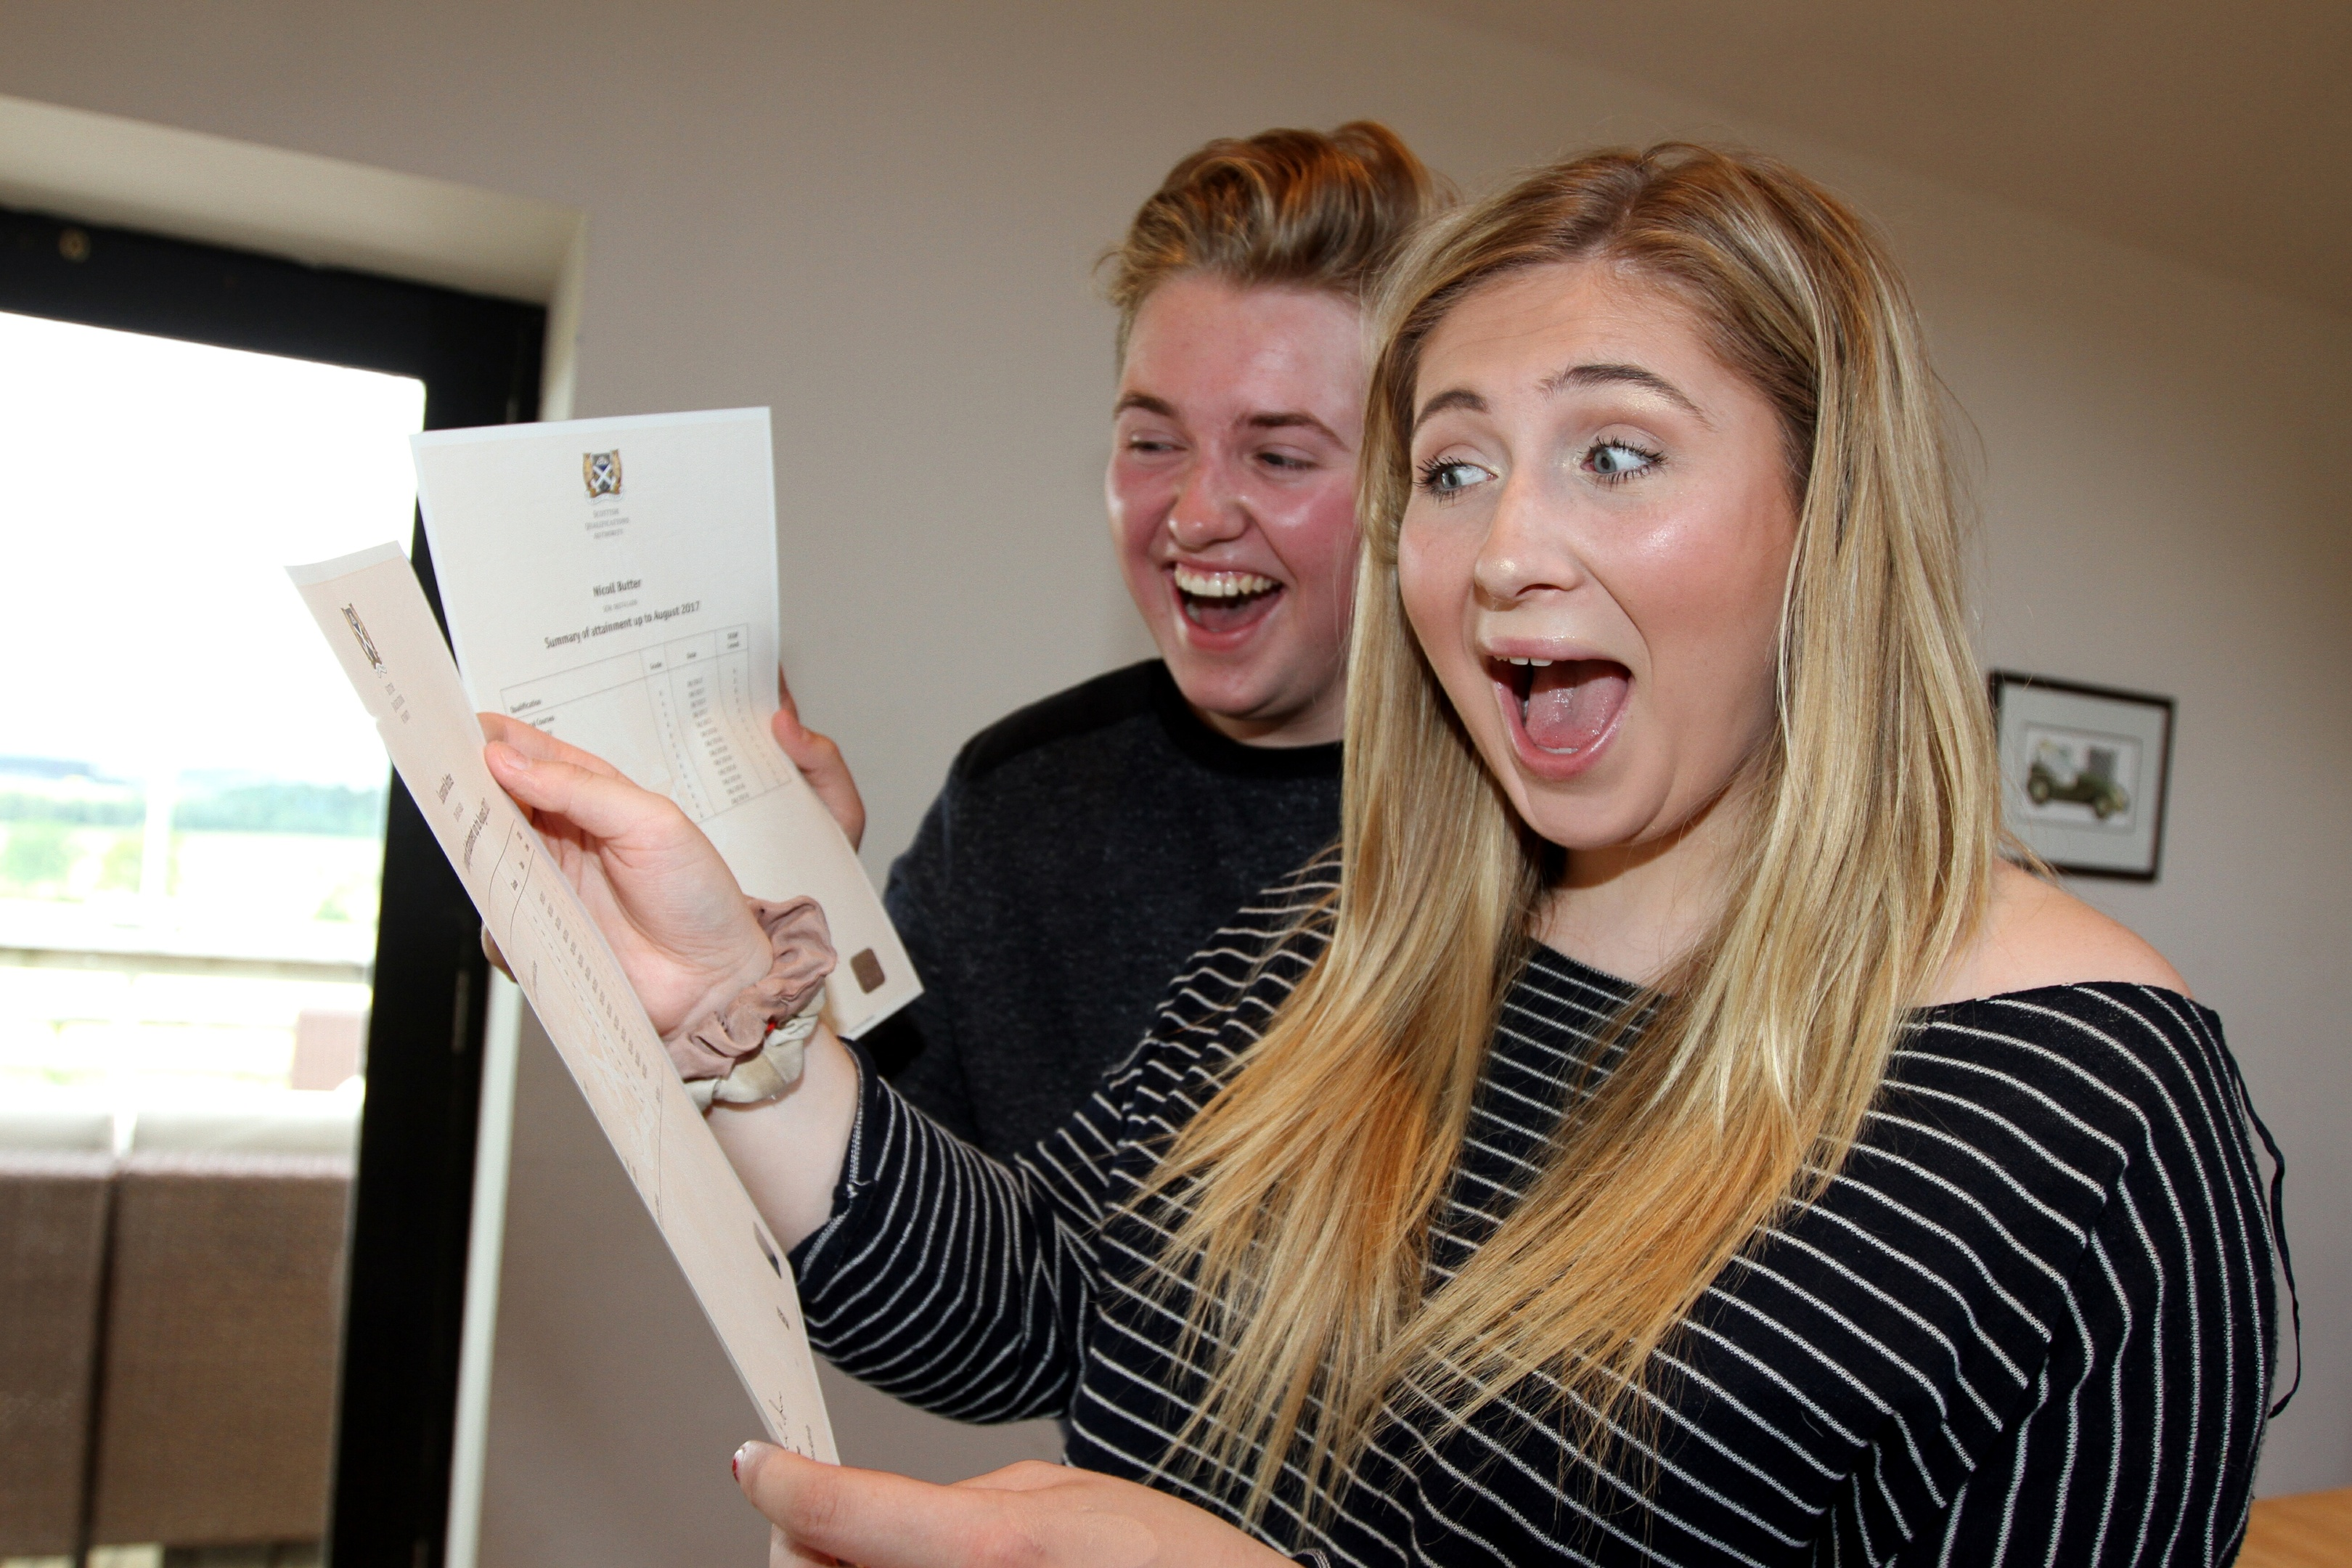 Nicoll and Susie Butter opening their exam results at home on Tuesday.